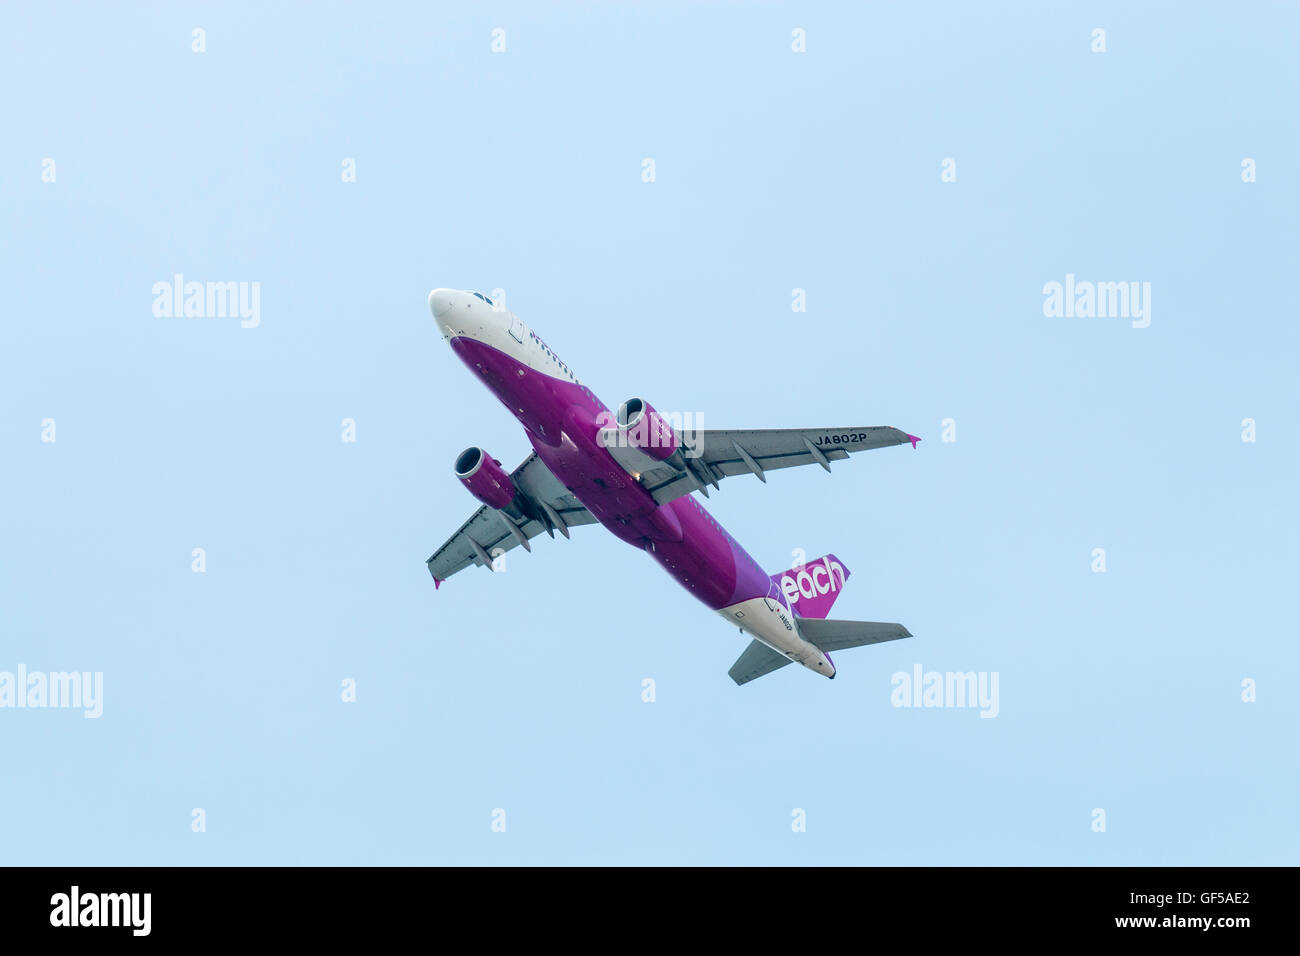 Japan, Kansai airport, KIX. Pearch Airline Airbus A320-200, JA 802P in flight and climbing overhead after take-off. - Stock Image